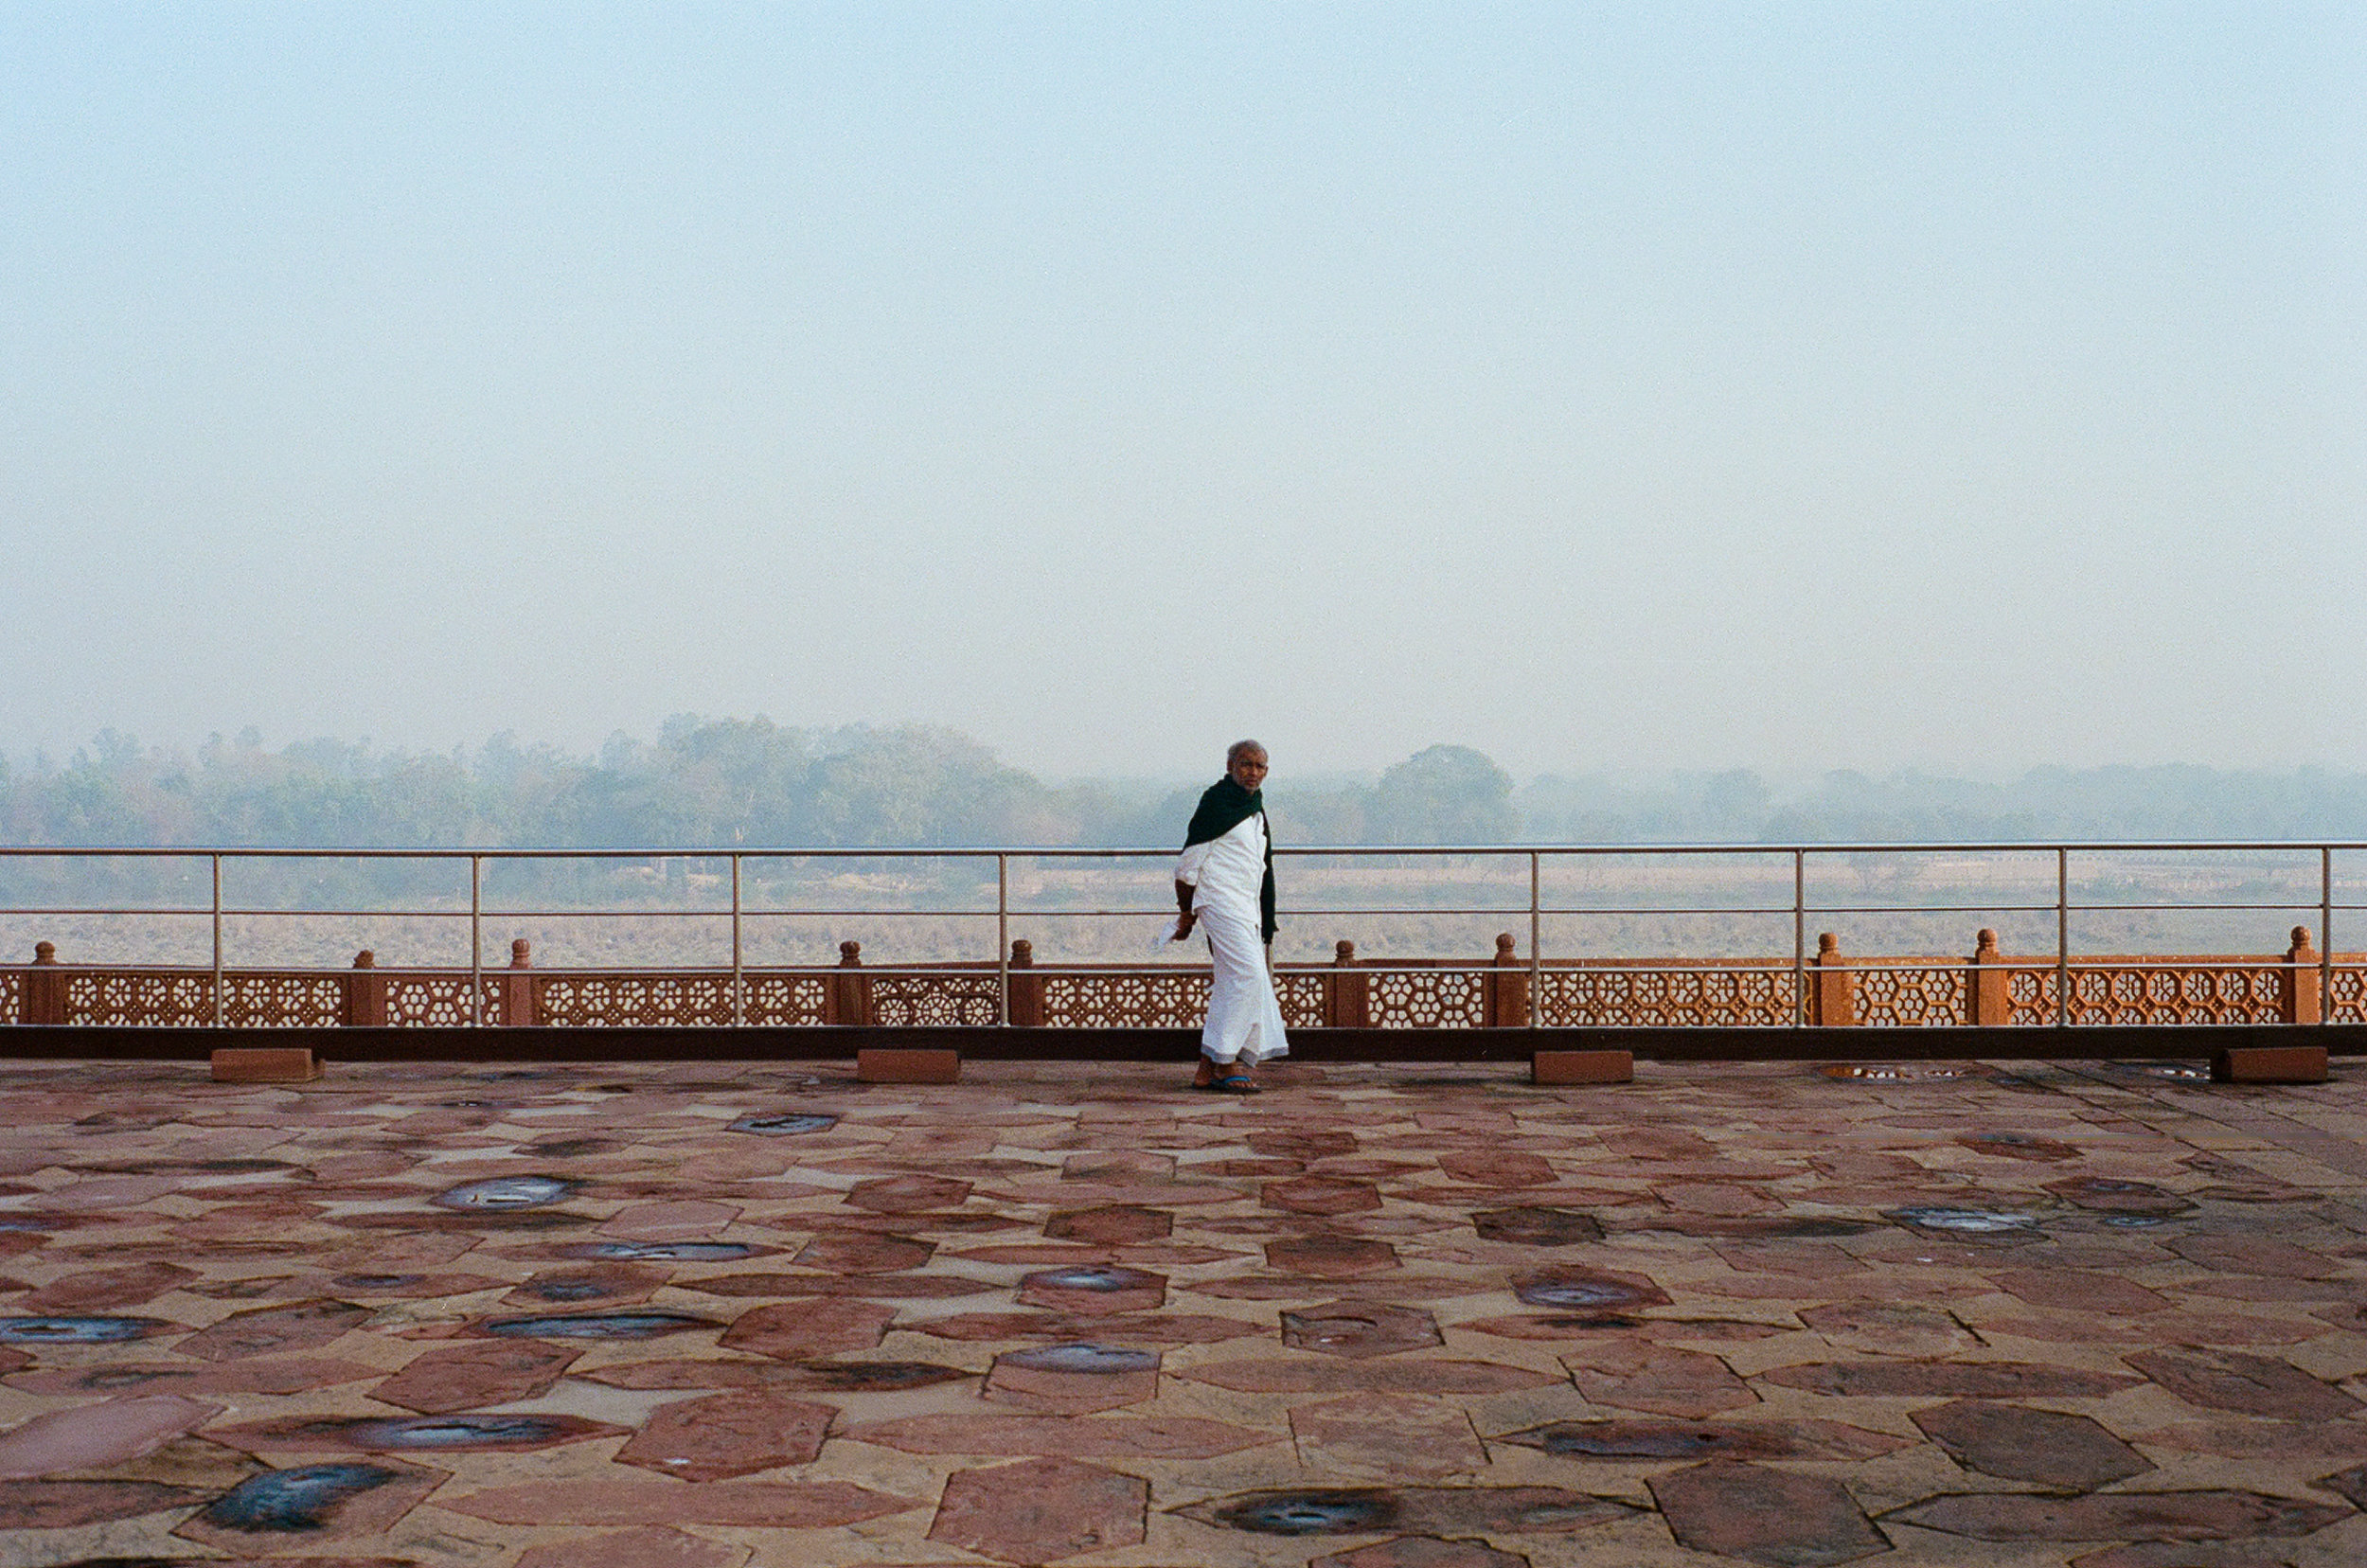 One really effective usage of negative space is to show solitude. Here the man is dwarfed by the empty spaces to all sides of him. Despite being taken at the busy Taj Mahal, the emptiness makes the environment feel calm.